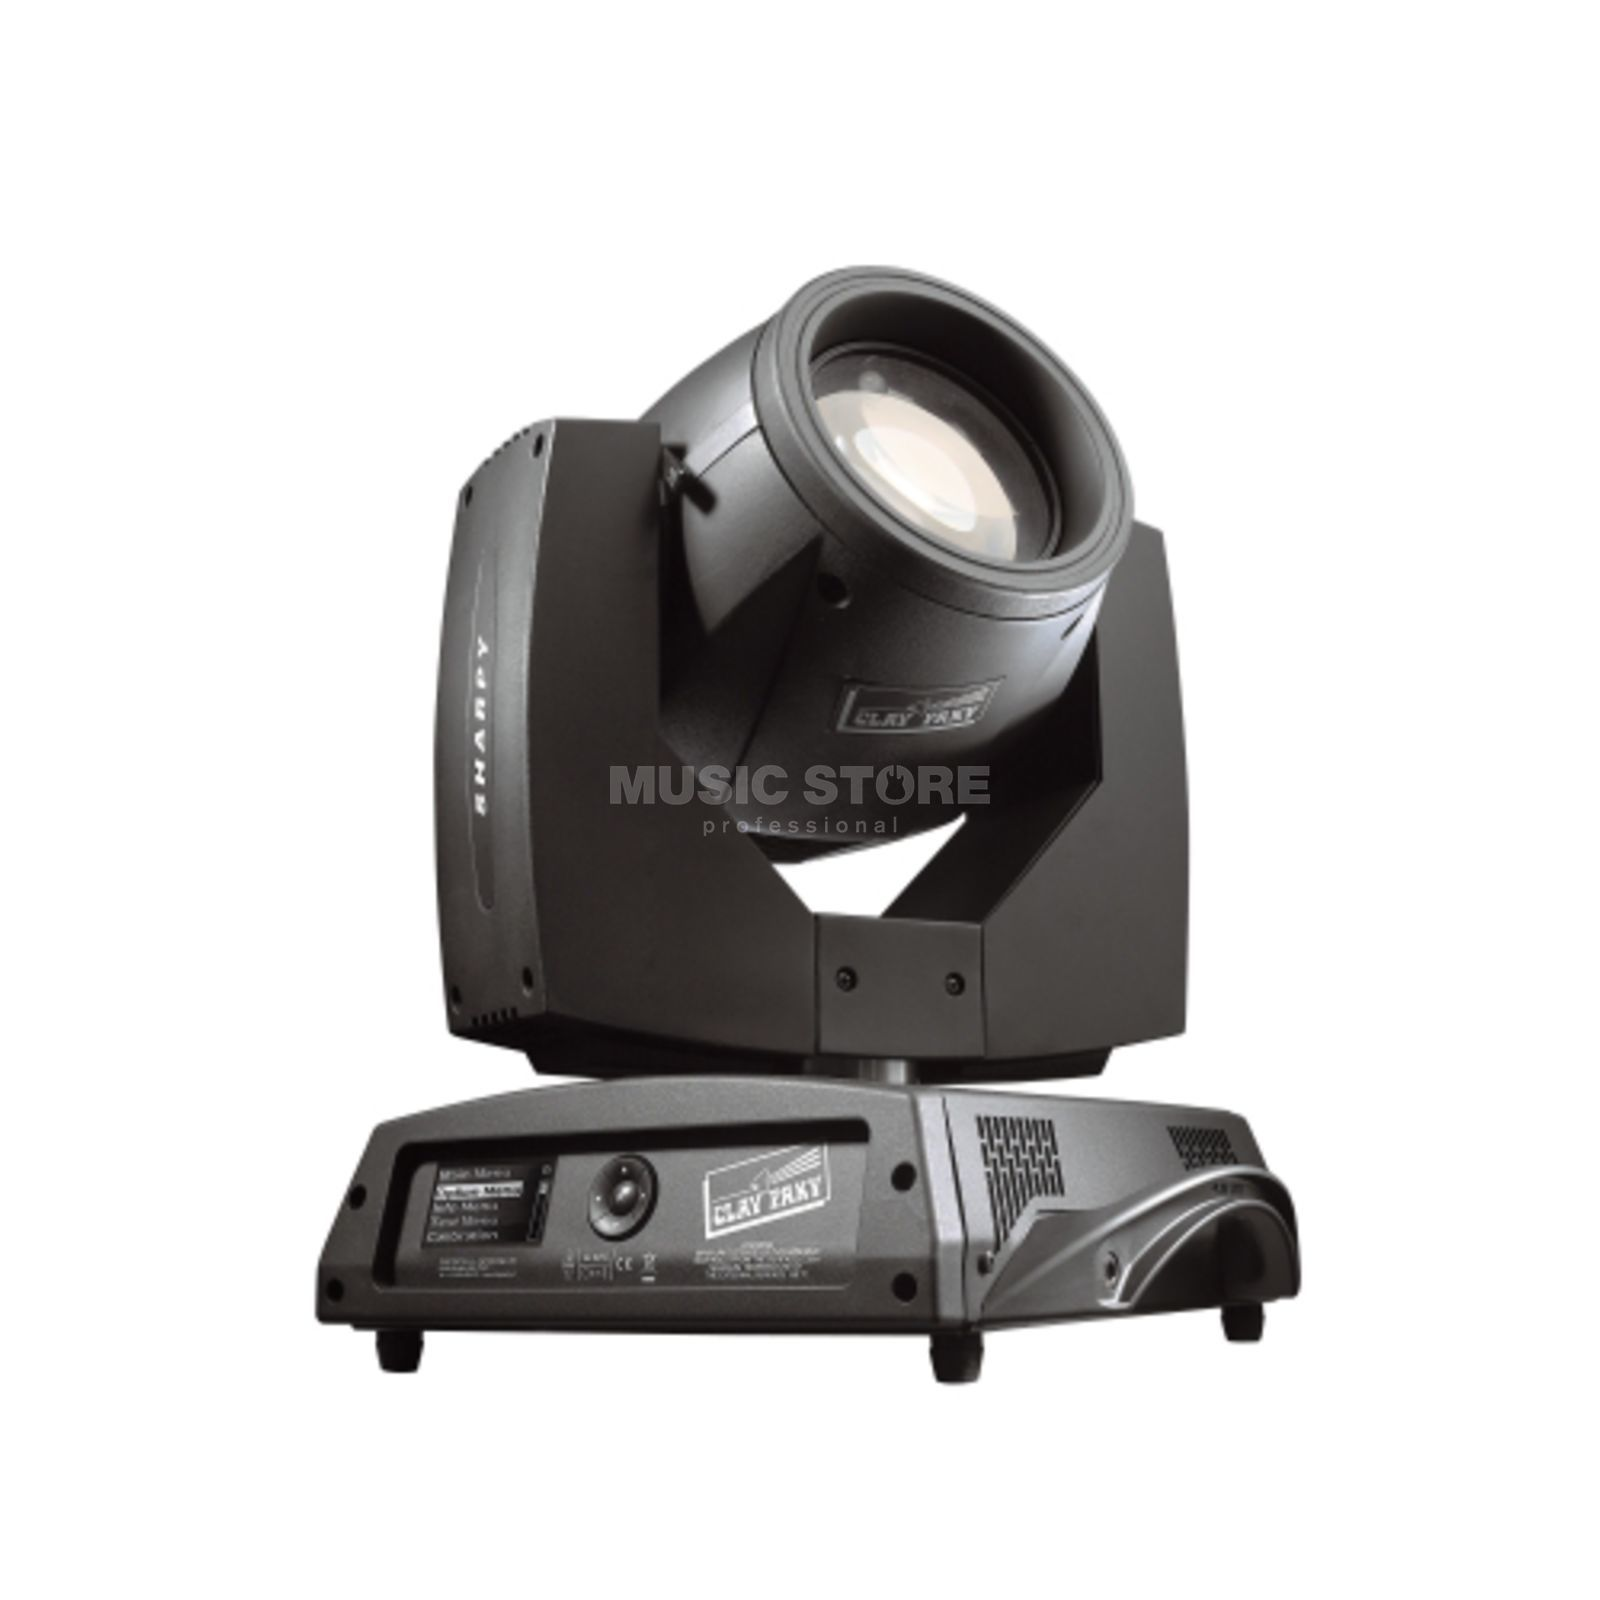 Clay Paky SHARPY Moving Head incl. 189W Discharge Lamp Produktbillede